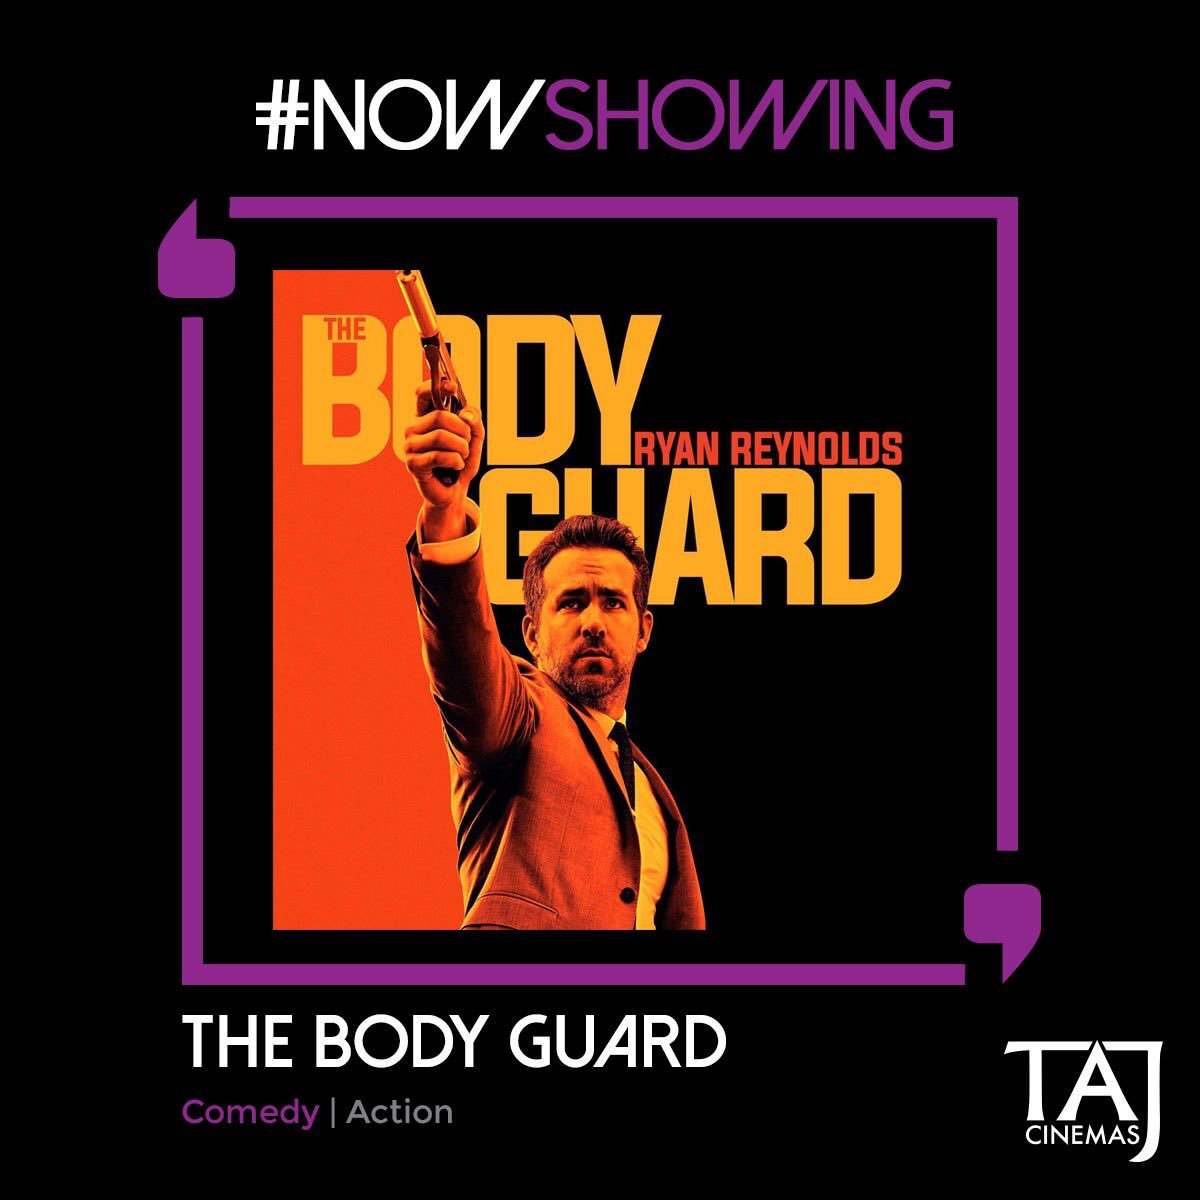 #Action #Comedy  The Hitman. The Bodyguard. Who's protecting who? Get triggered on today with #TheHitmansBodyguard Now Showing @TajCinemas. https://t.co/uGgcSvg8JH